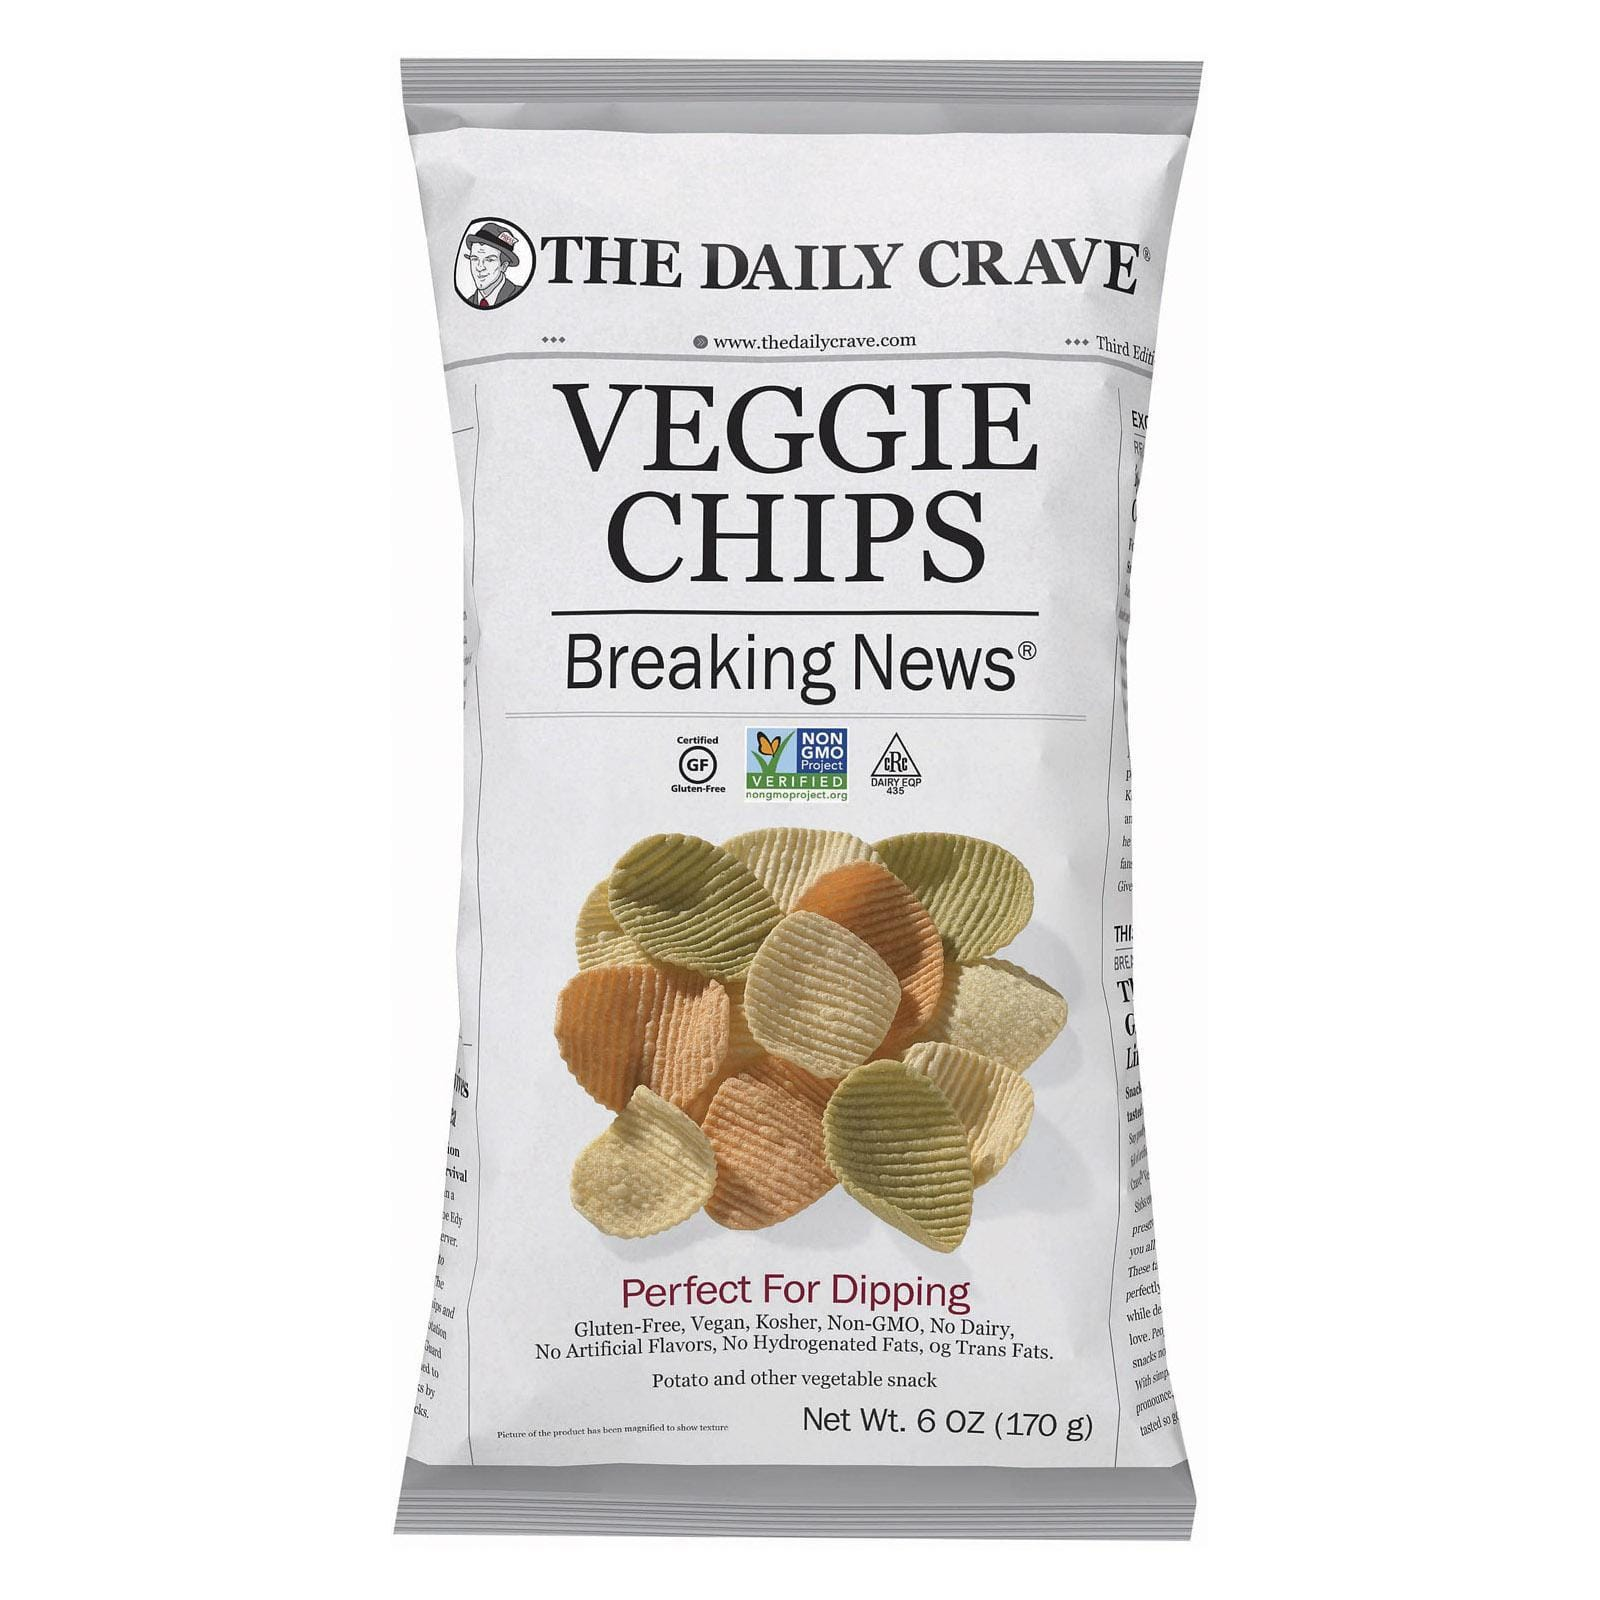 The Daily Crave Chips, Pretzels & Popcorn The Daily Crave Veggie Chips - Perfect For Dipping - Case Of 8 - 6 Oz